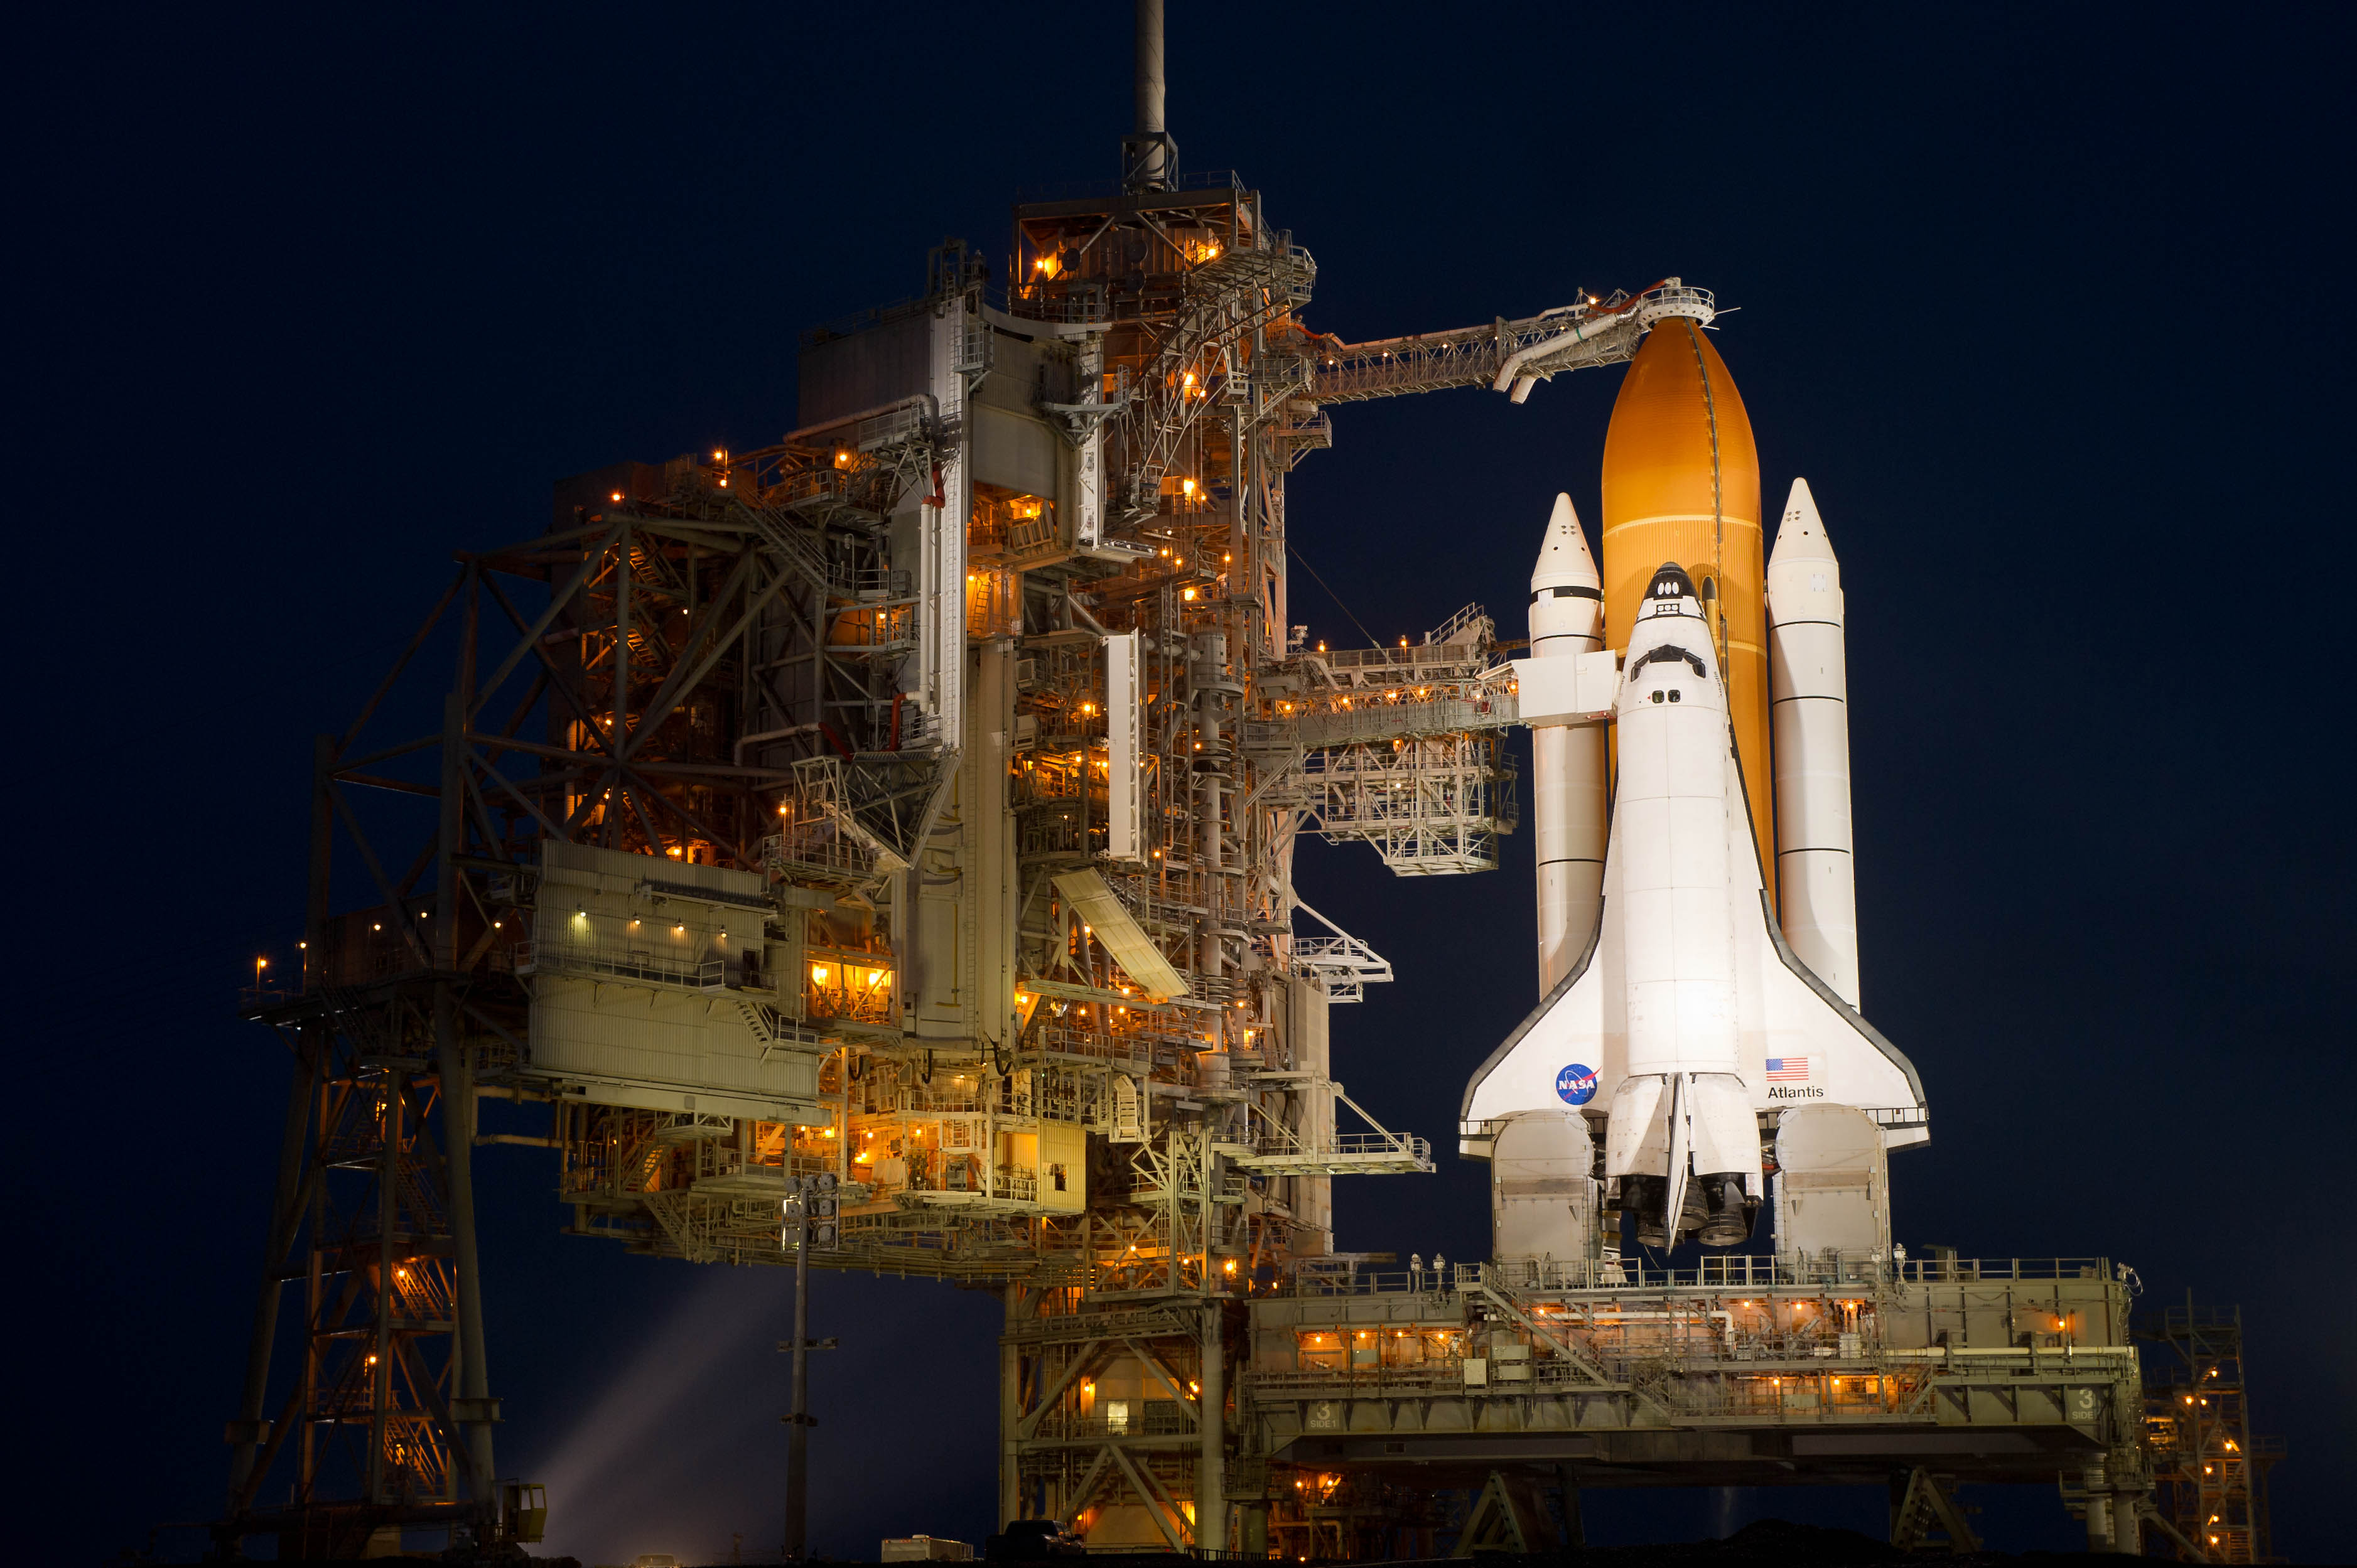 nasa shuttle facility jewish dating site Kicking off white house season on discovery channel,  whether it's a small business, athletic facility or restaurant that suffers, the propert .